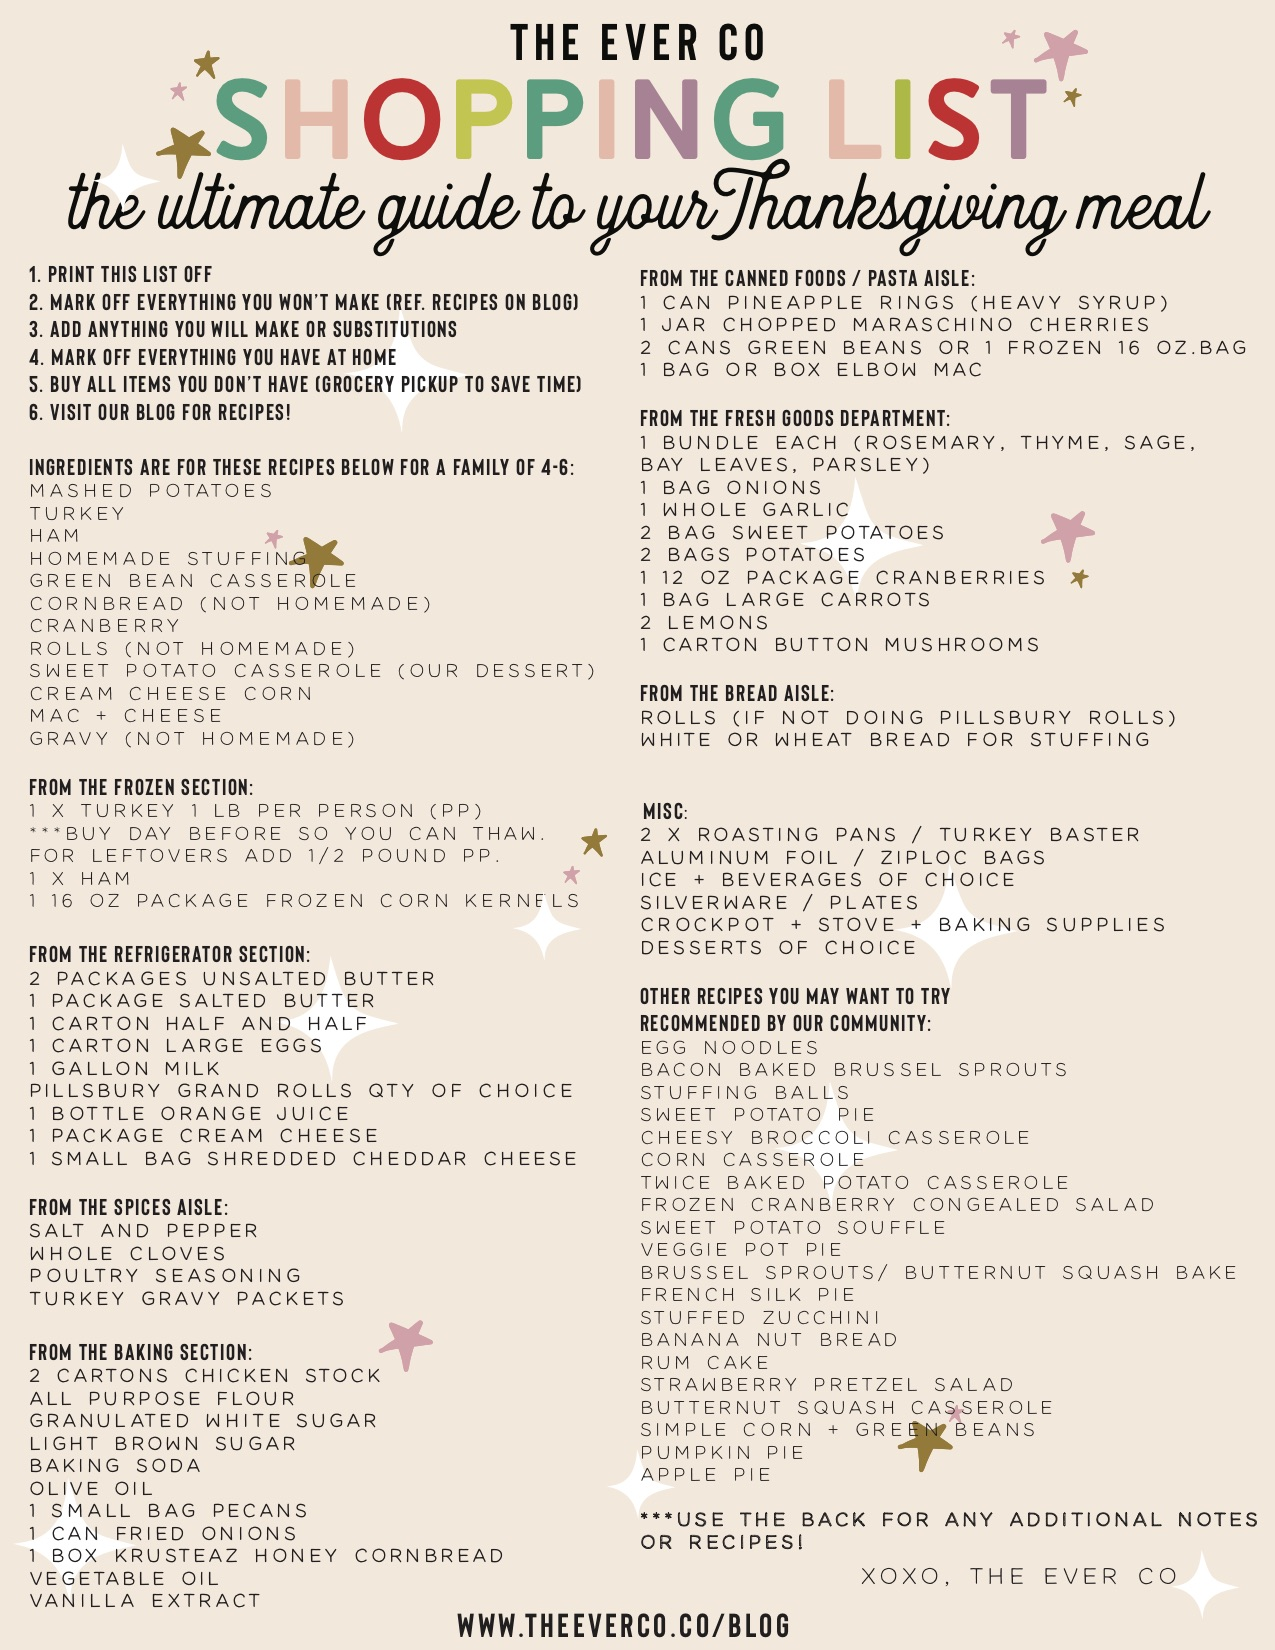 The Ever Co Ultimate Thanksgiving Shopping List copy.jpg